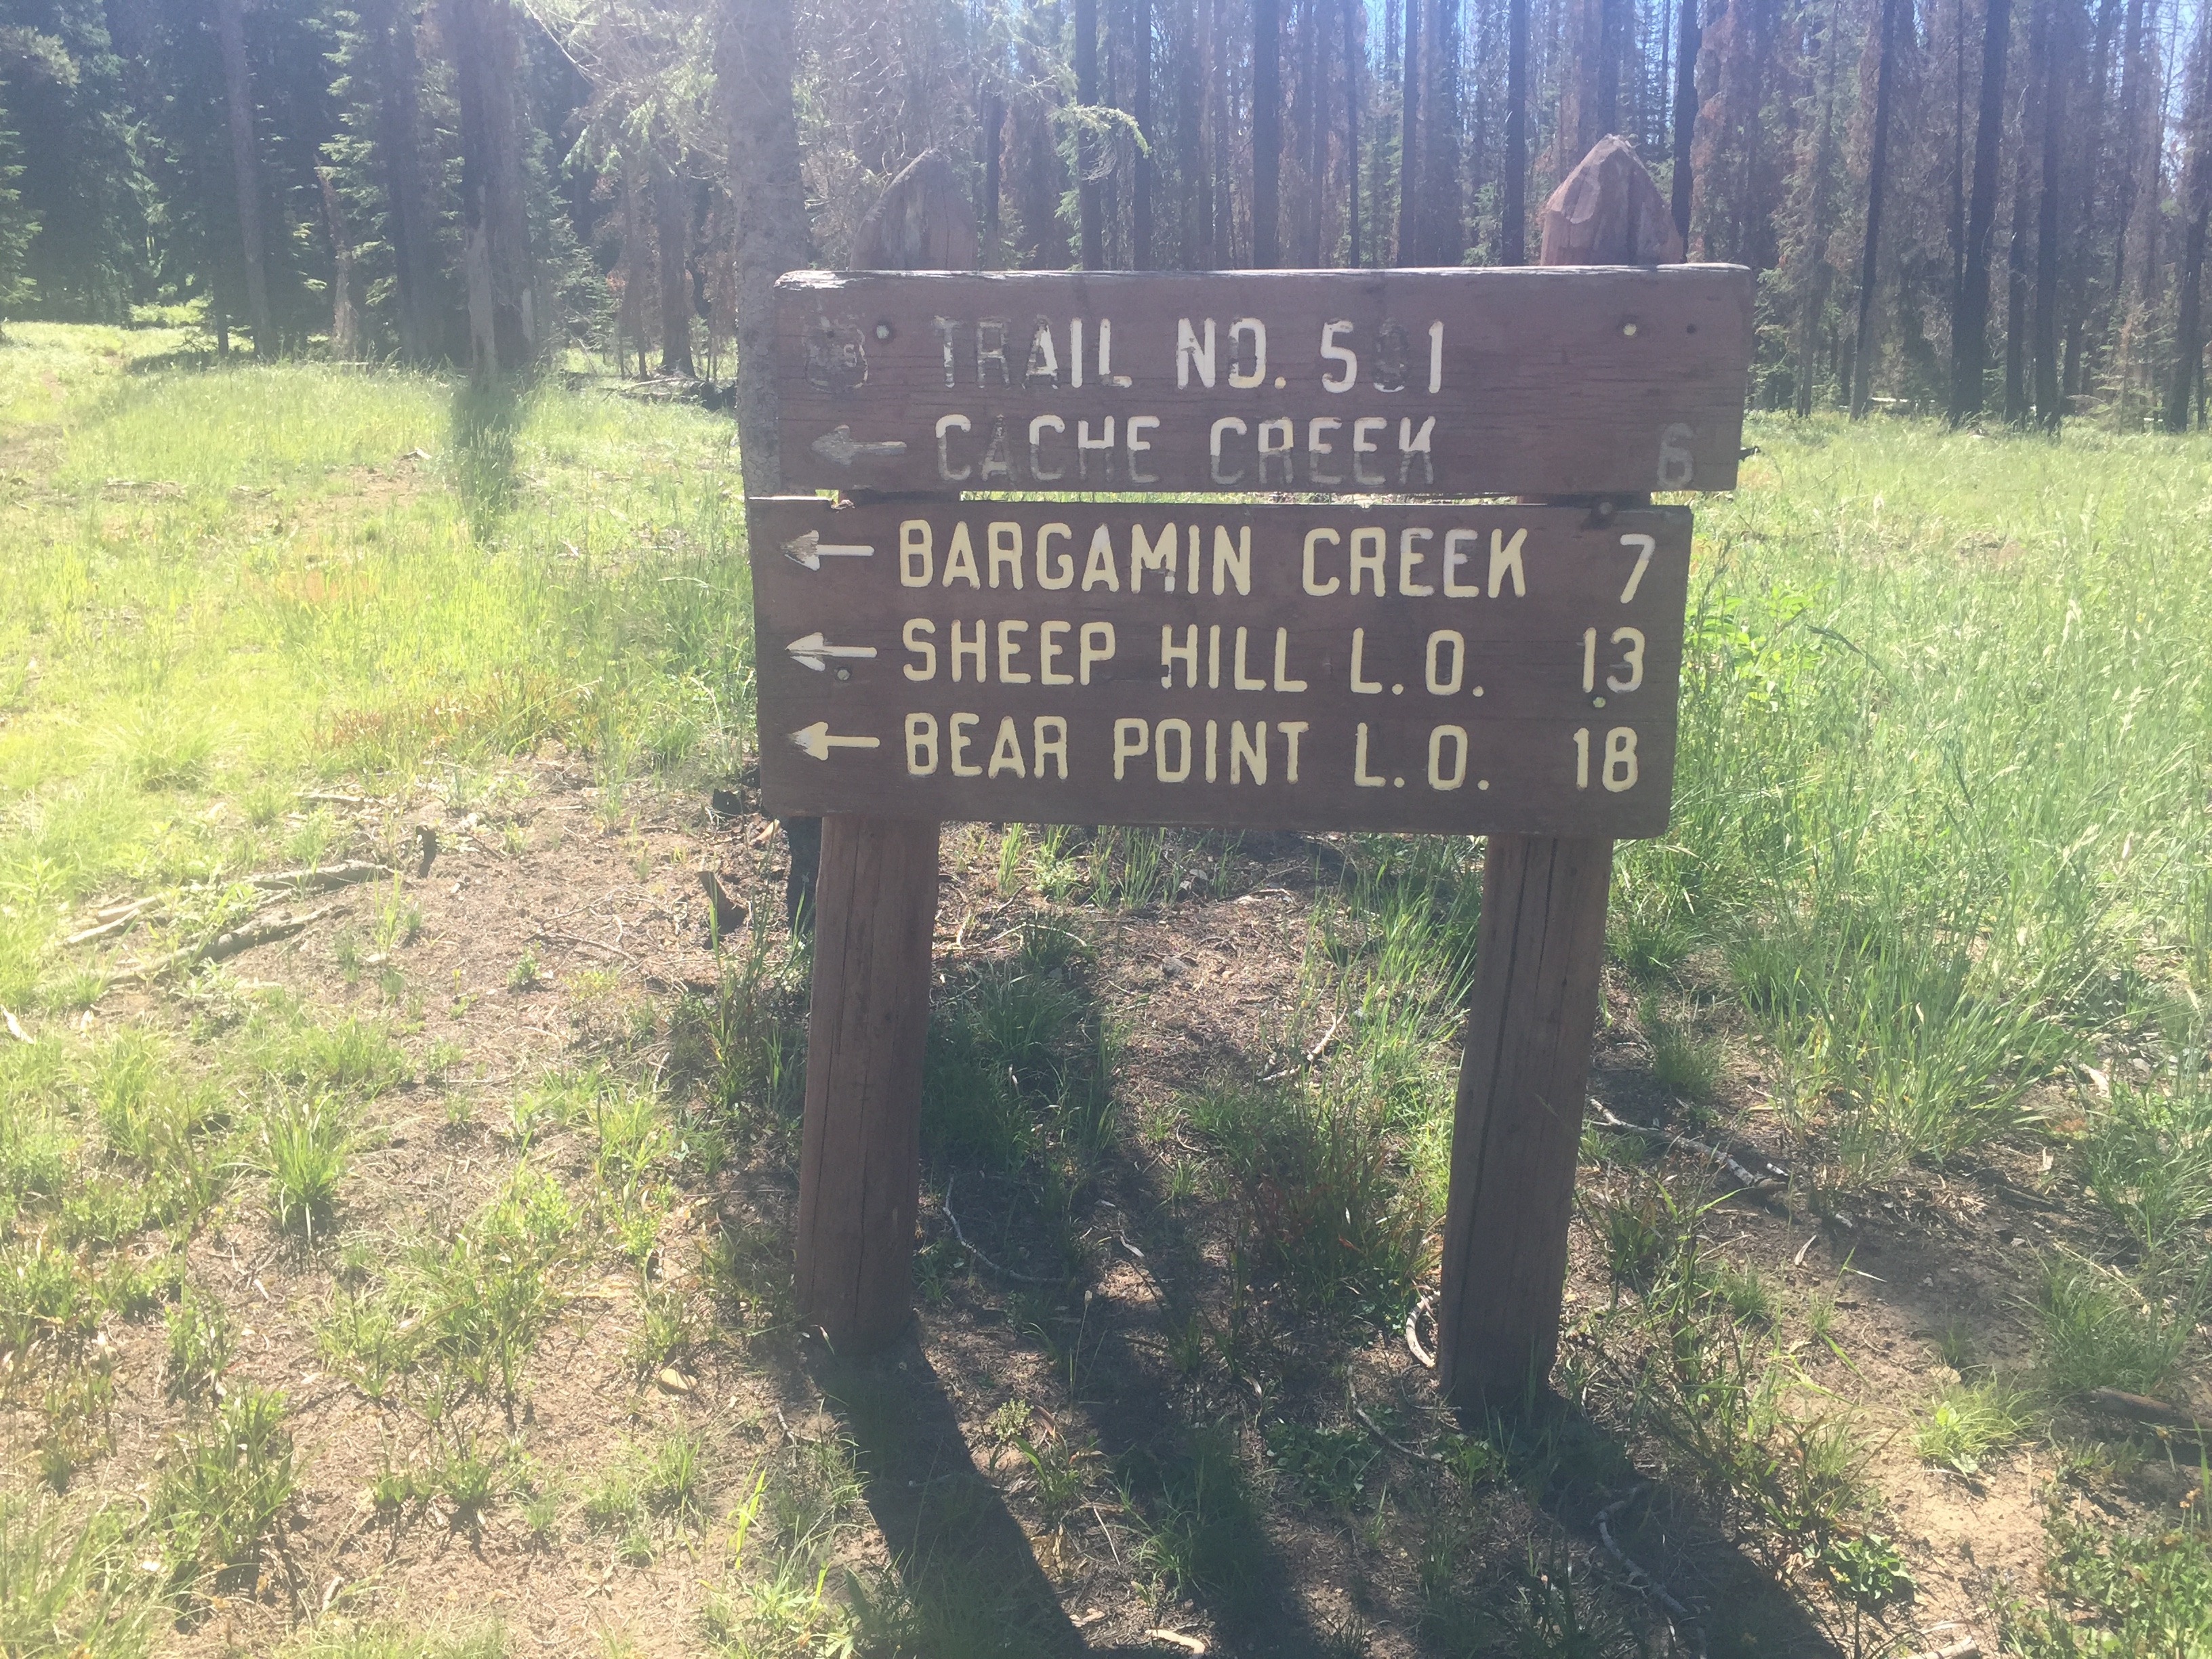 The 14-Mile Tree Trailhead is the beginning of FS-501.